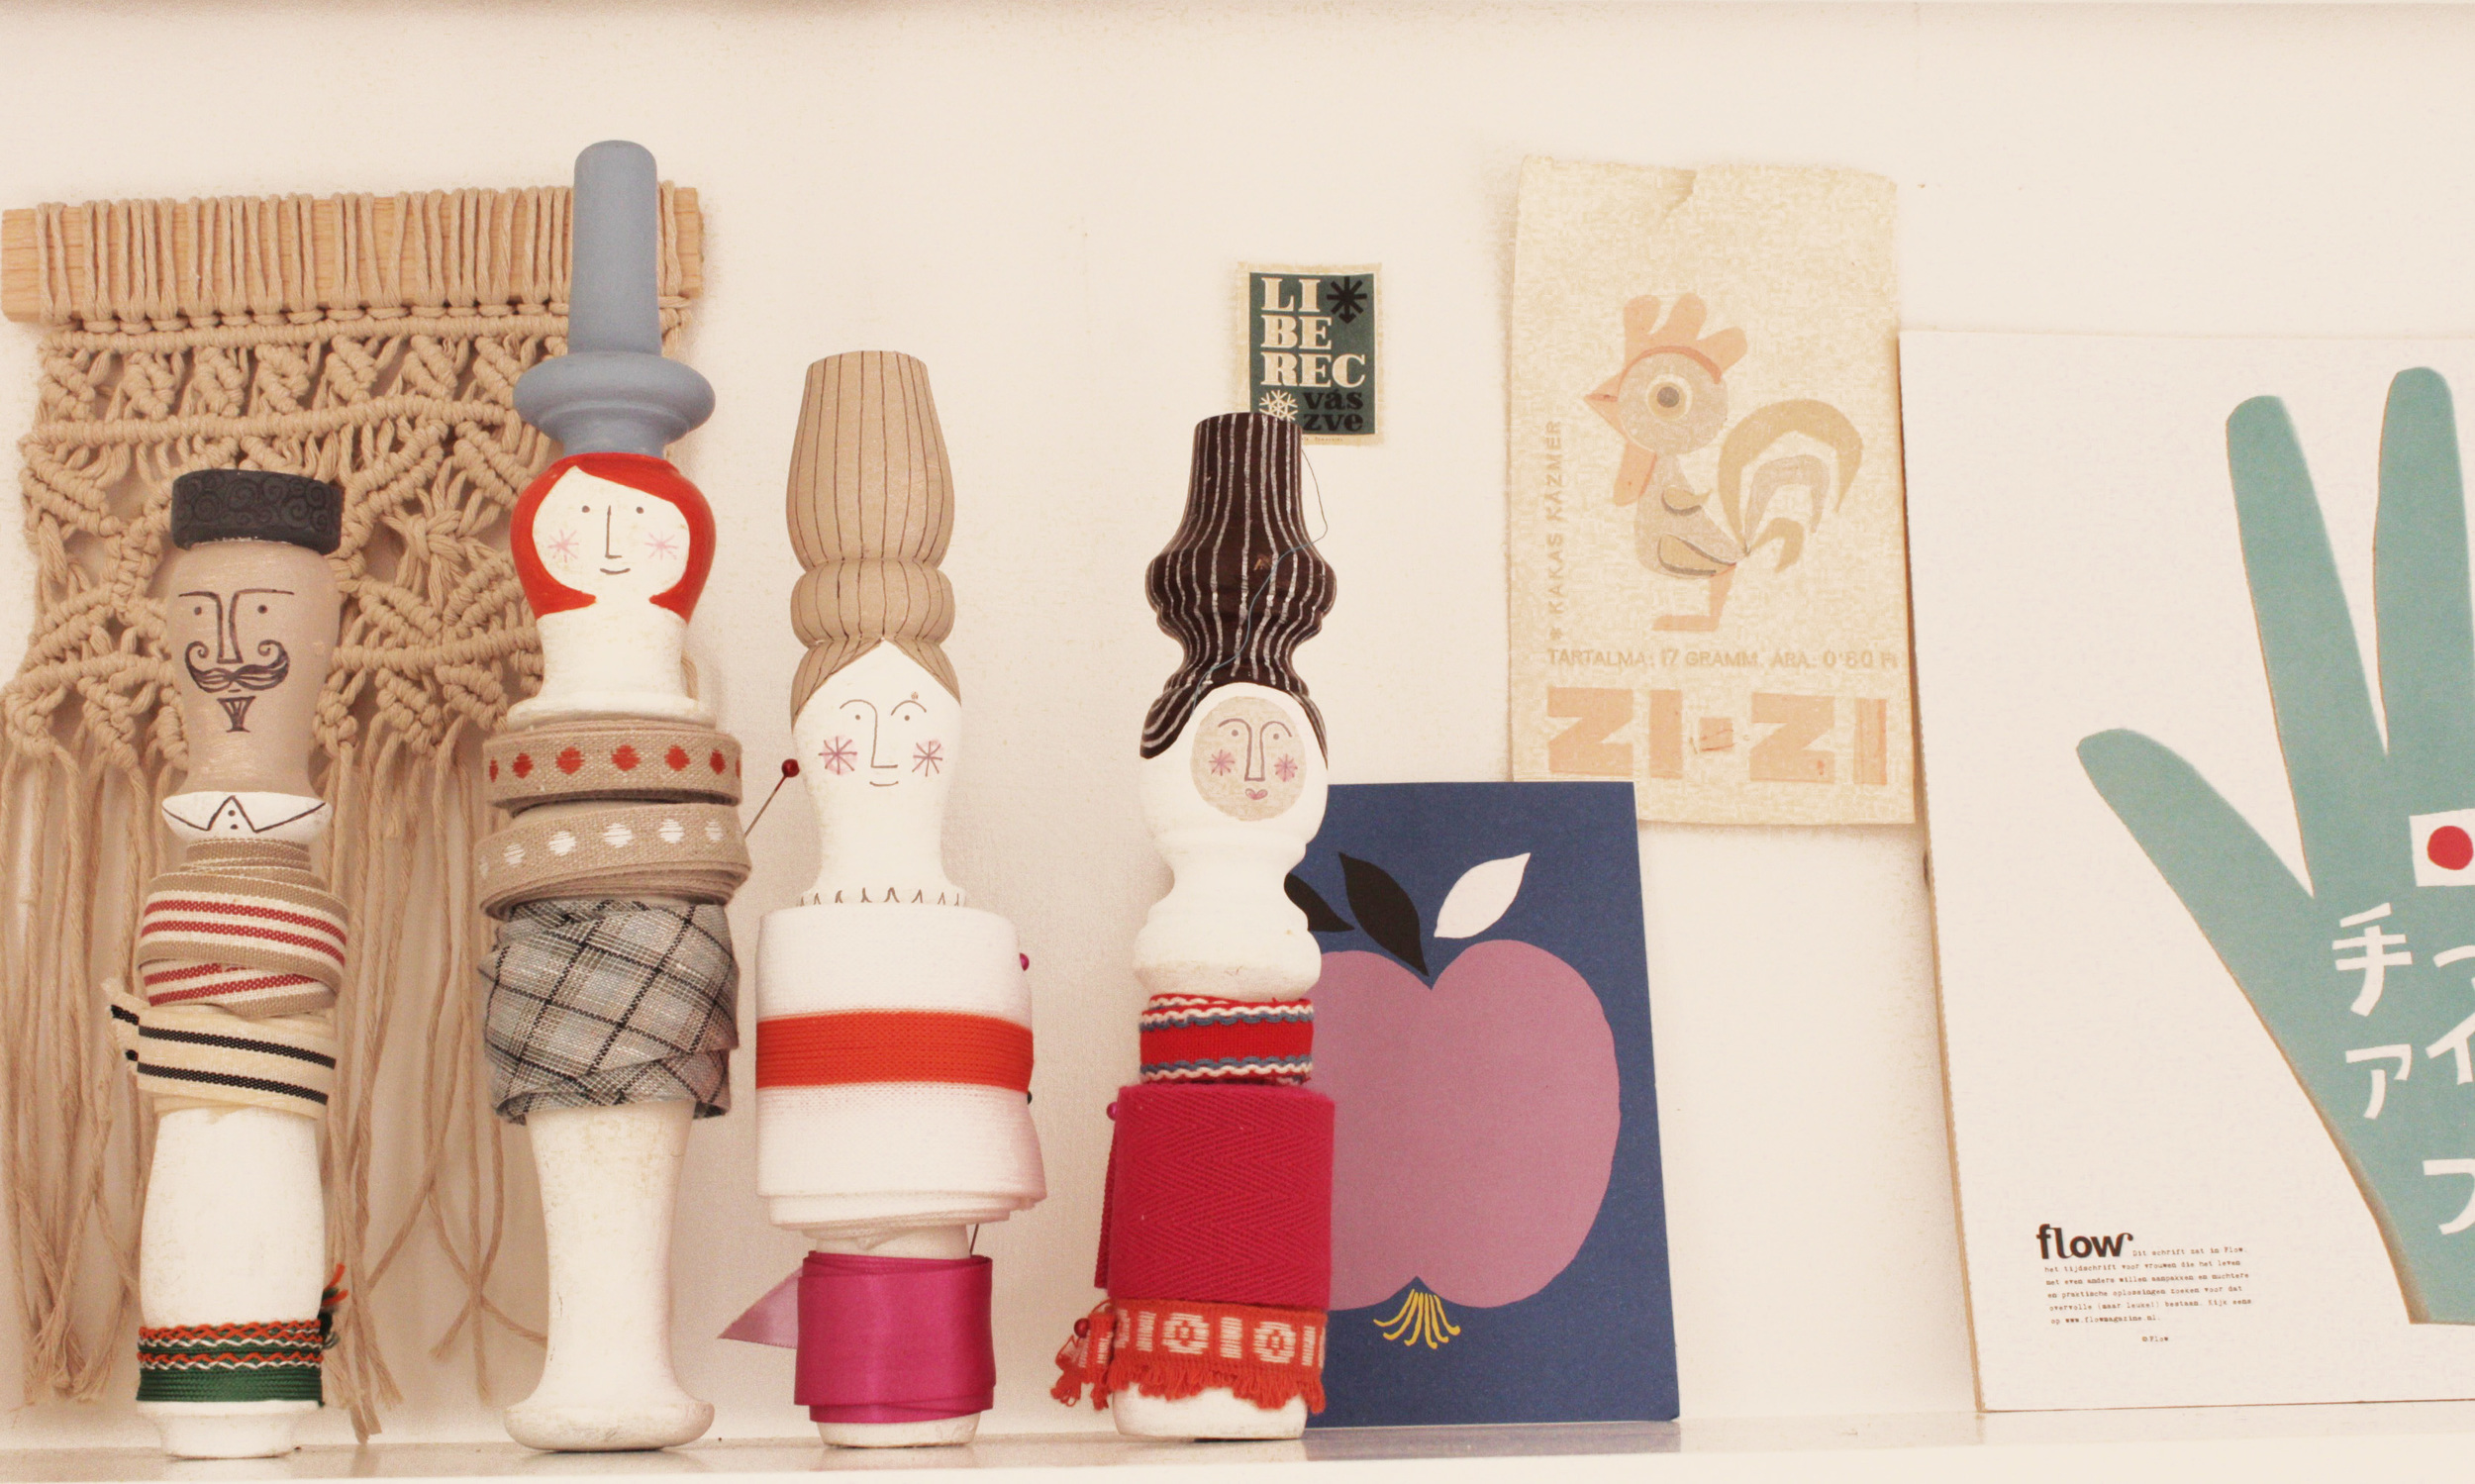 A few of Clare's makes and paper clippings that inspire her lined up on a bookcase.